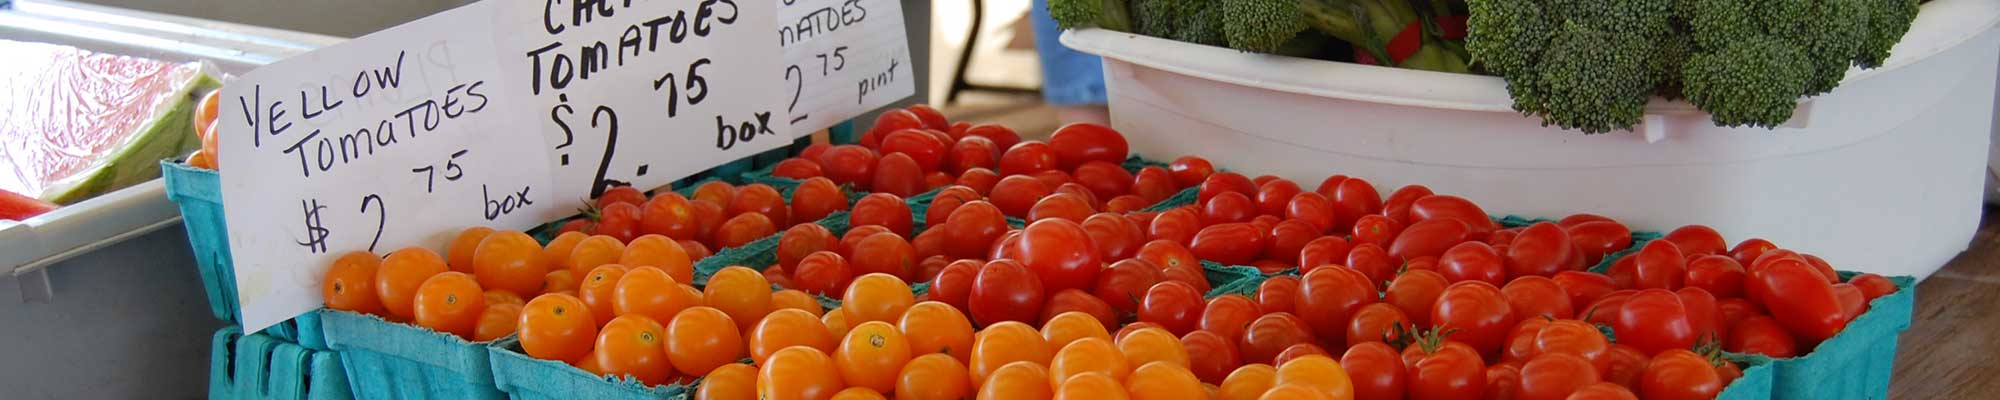 Pints of Yellow and Cherry Tomatoes | Farmers Market